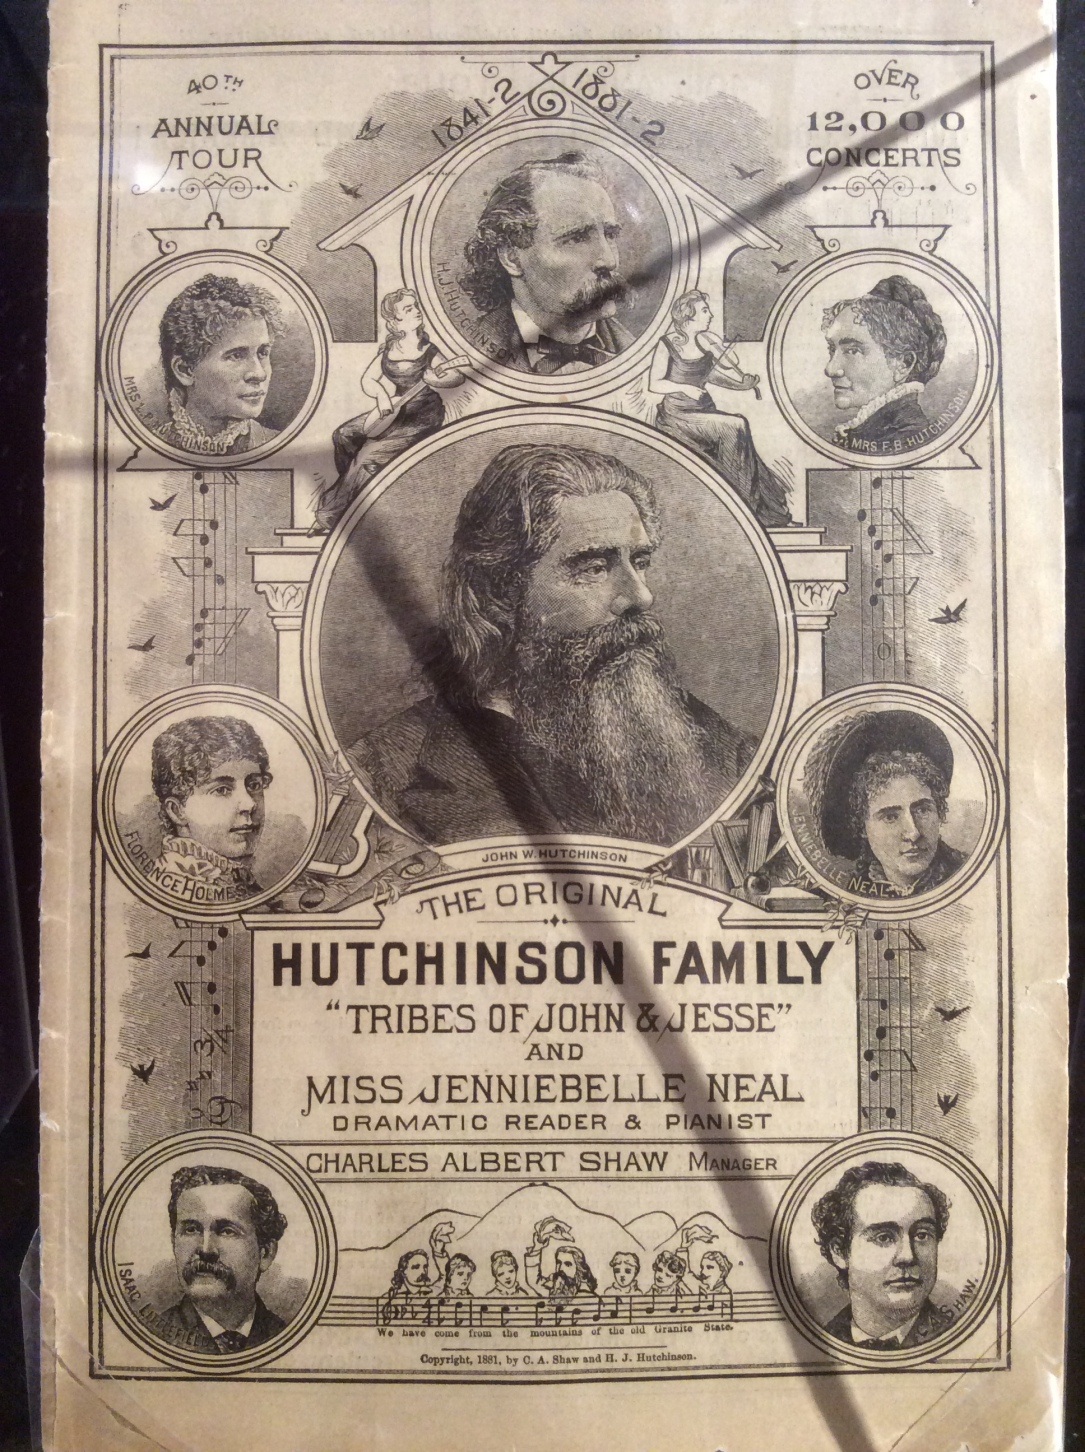 Hutchinson Family Singers Poster, Lynn Museum, 2016 Amy Cools